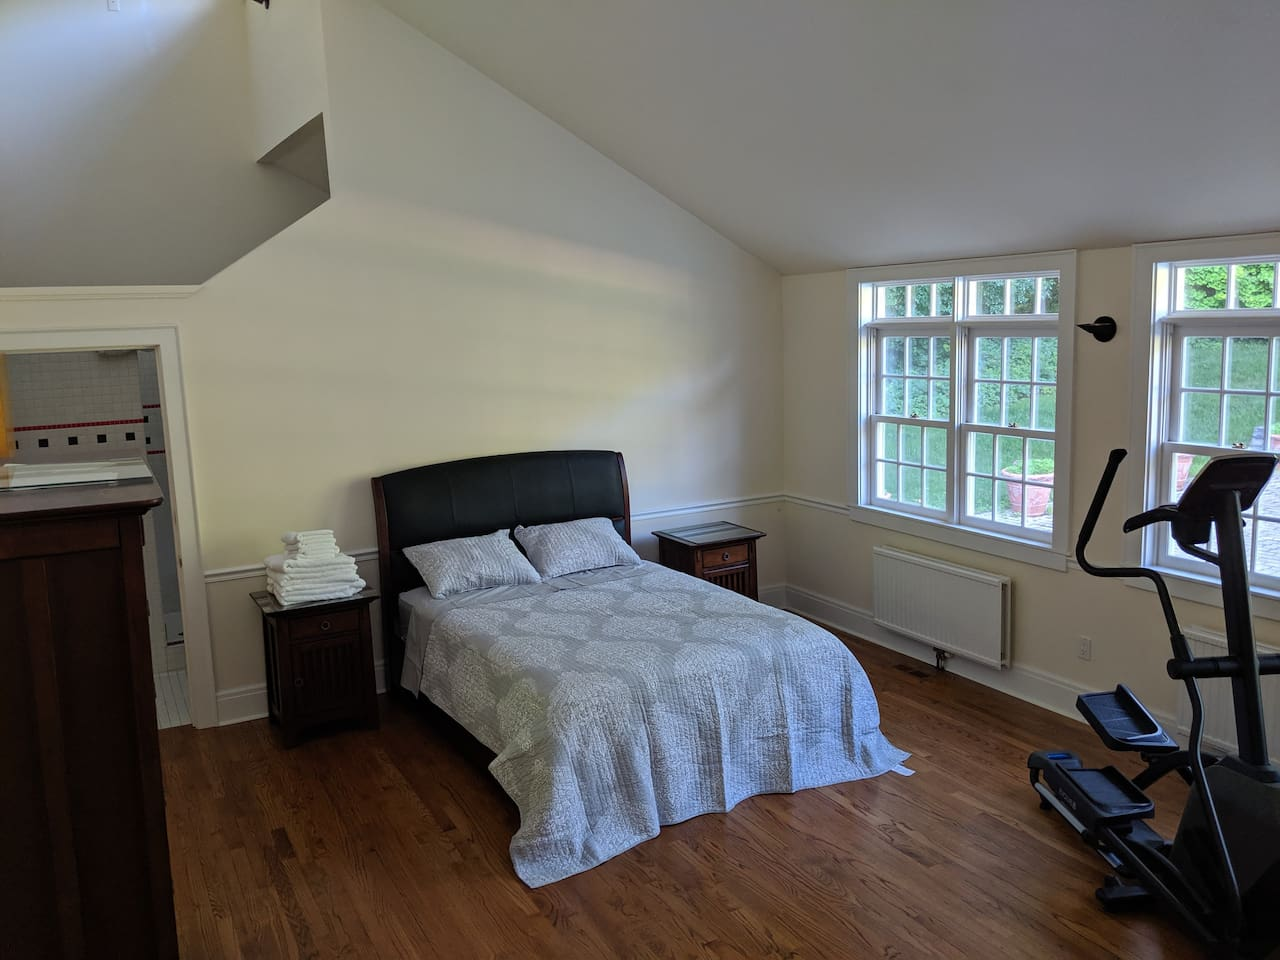 This is the guest suite bedroom. That is a queen bed. (The room is large, making the bed look small.) The doorway to the left leads to the hot tub room.)